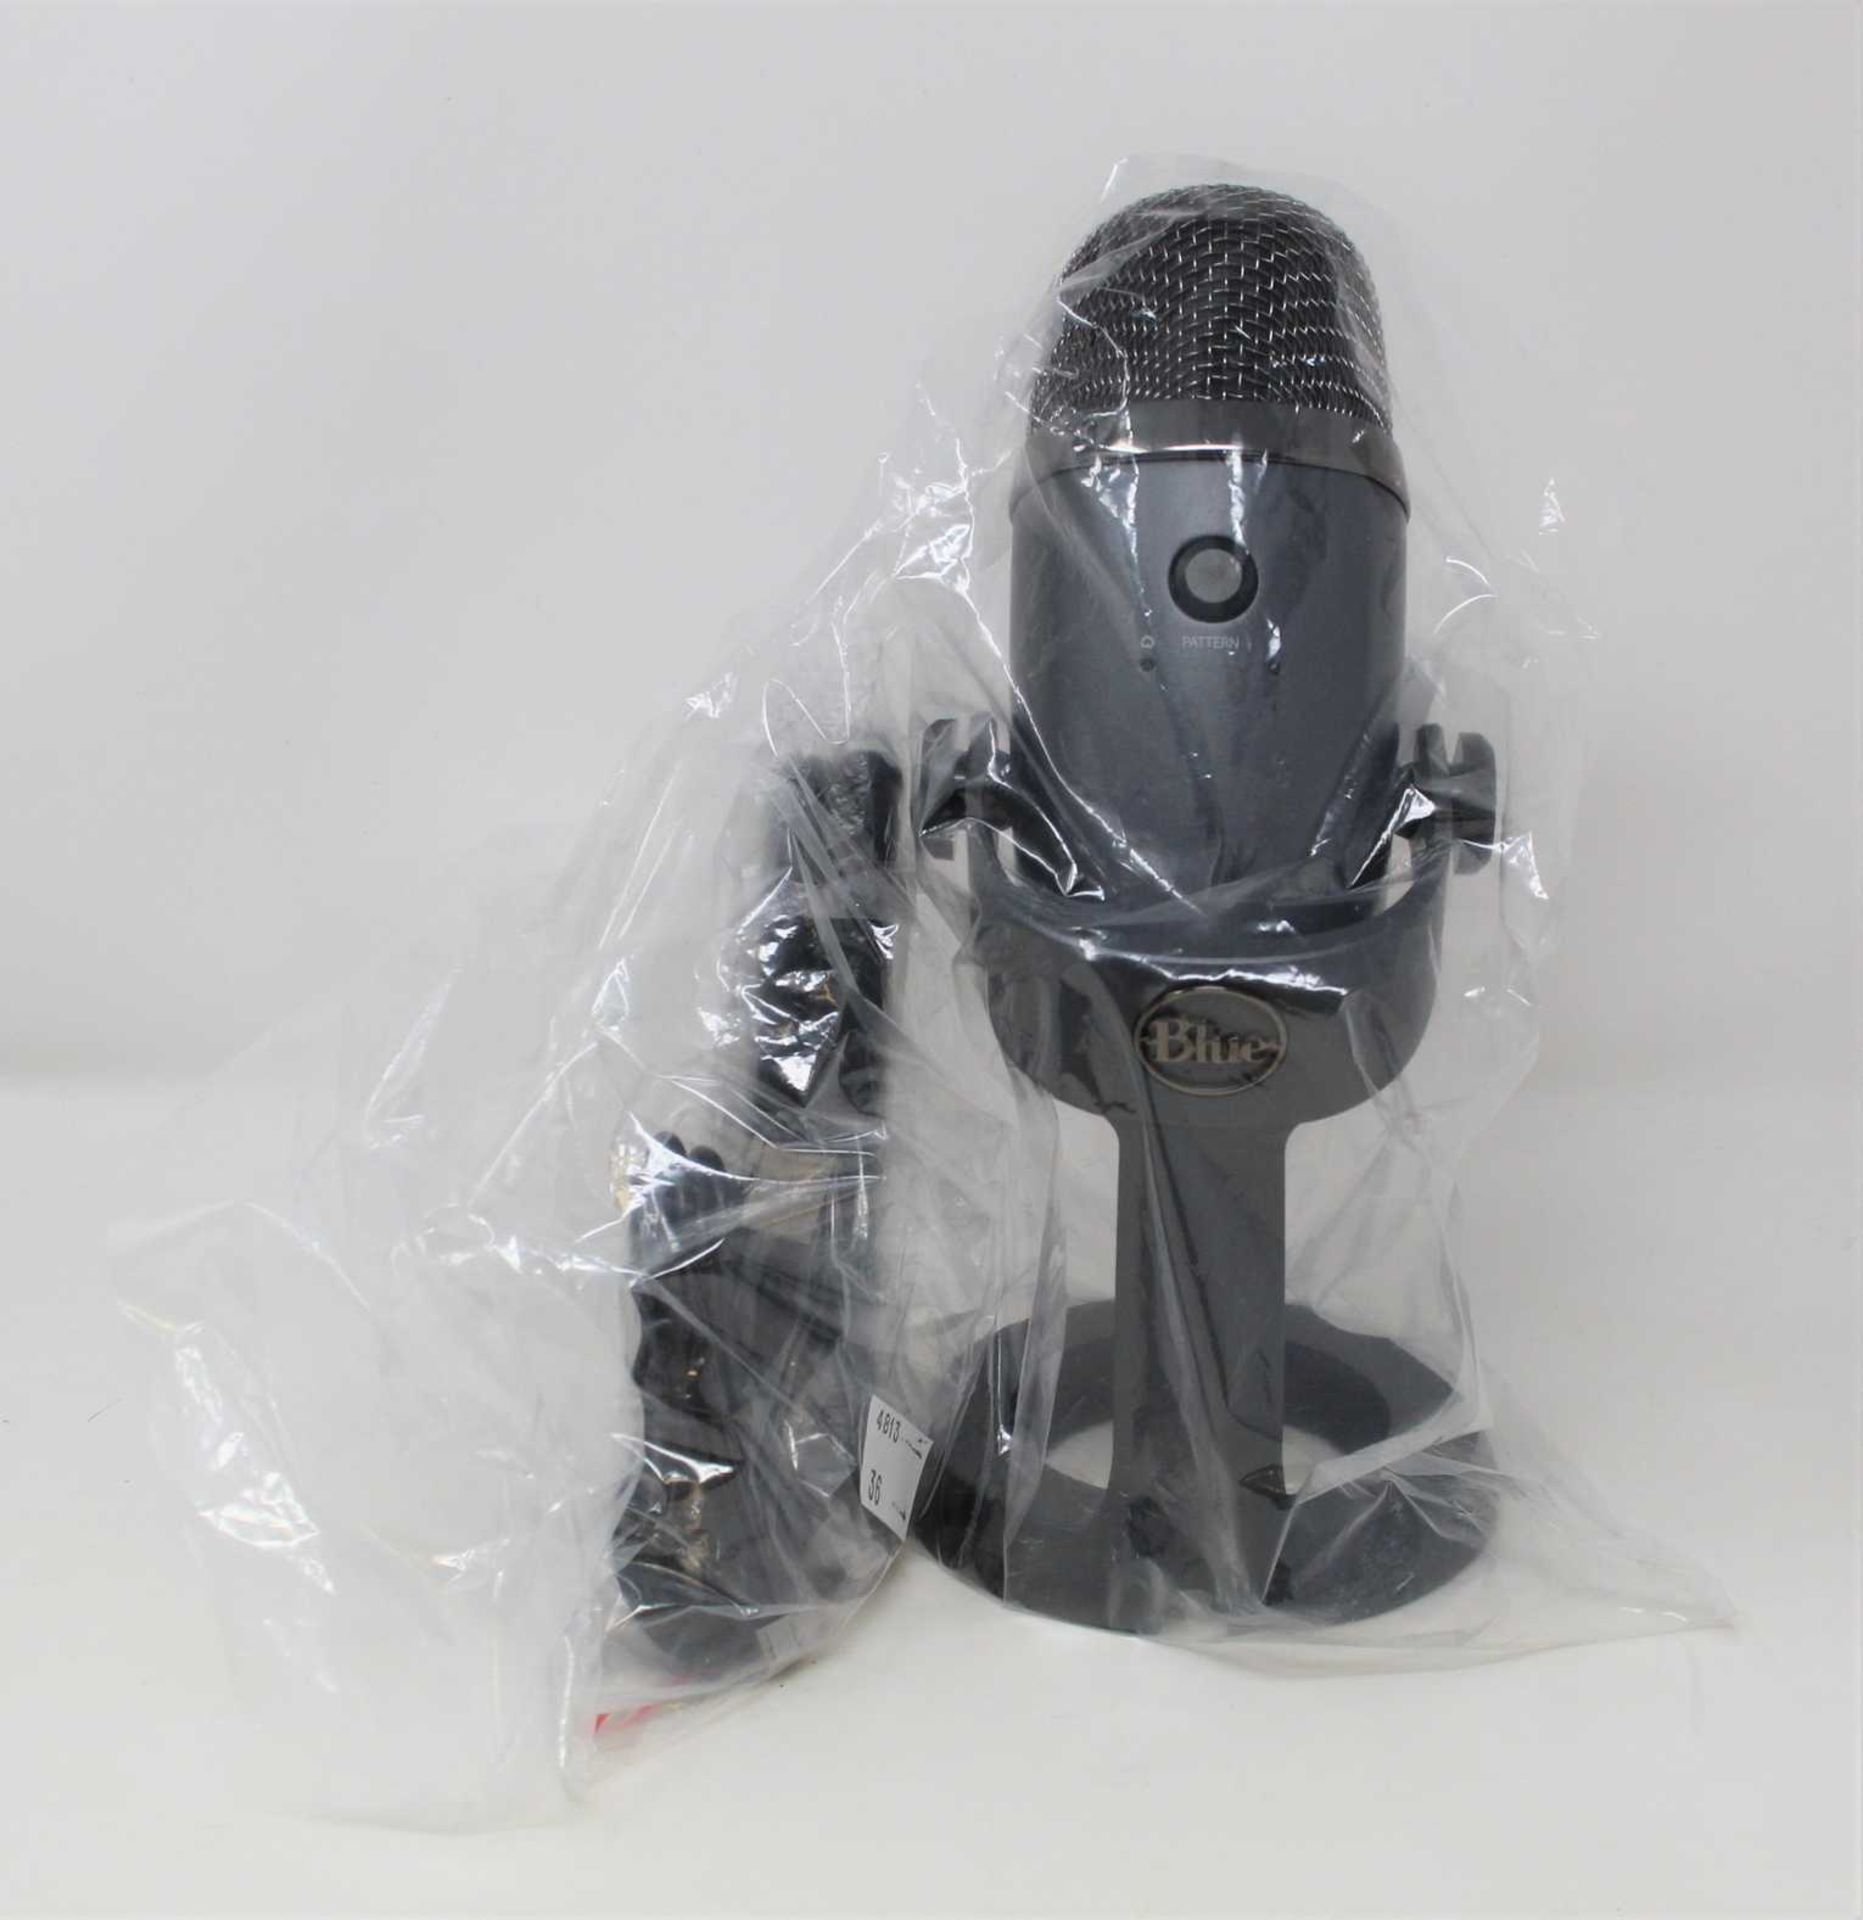 A pre-owned Blue Yeti Nano Premium Dual Pattern USB Microphone with stand and USB Cable.